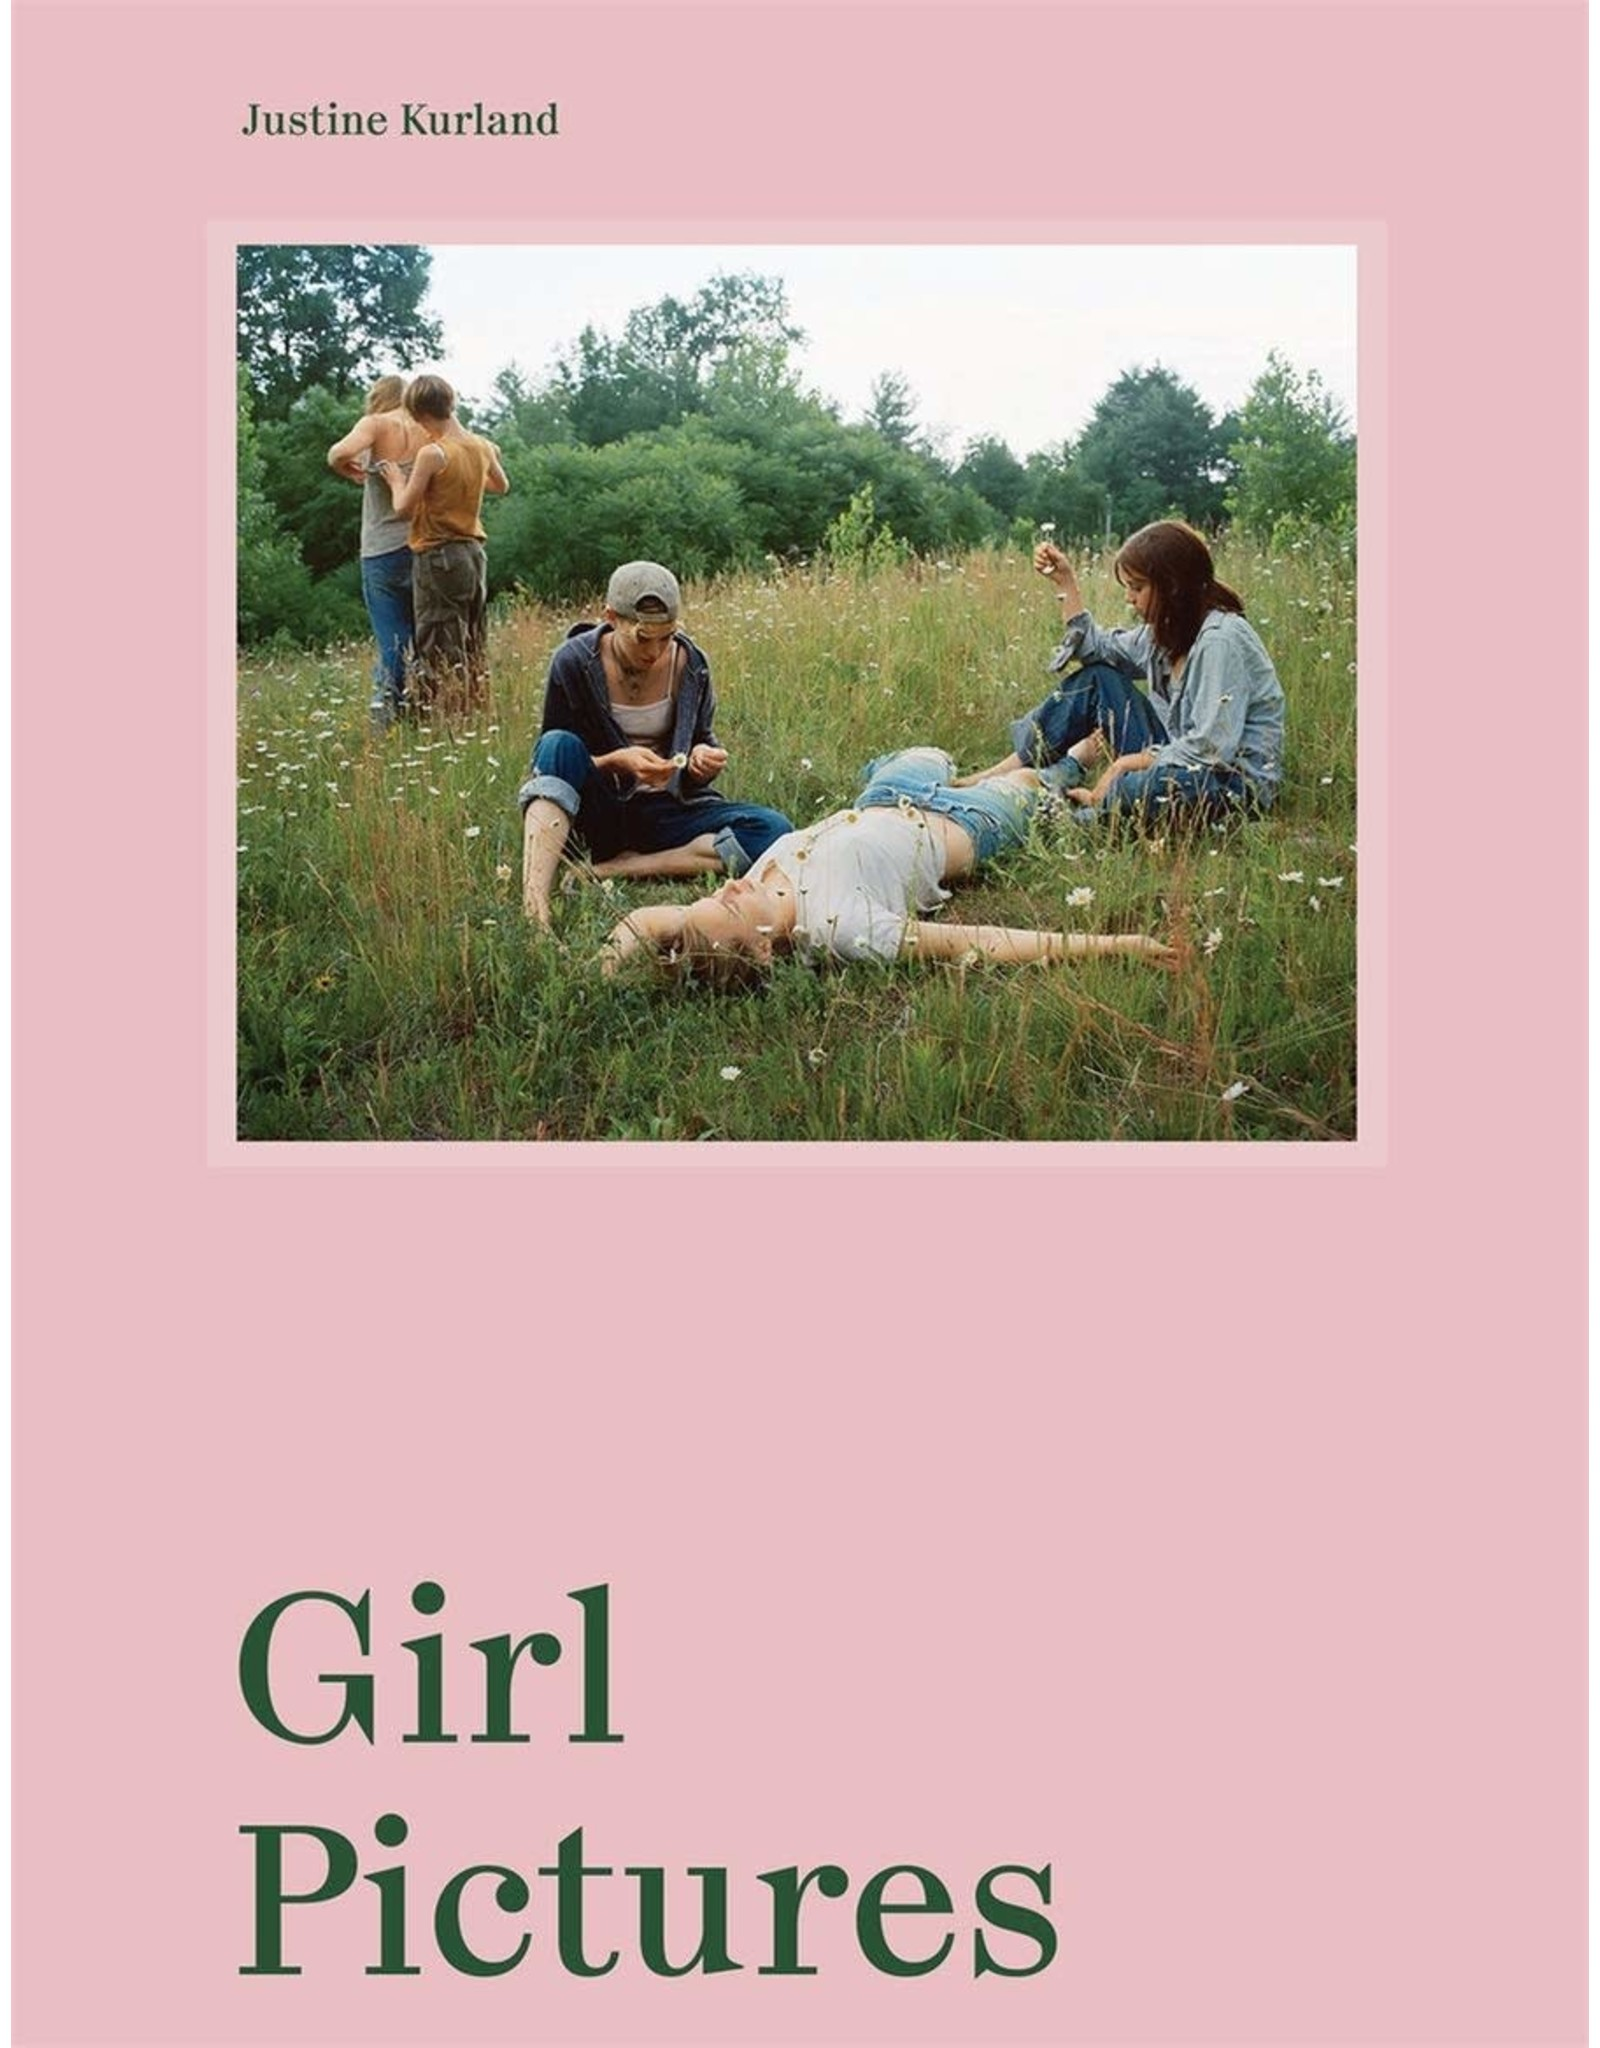 Justine Kurland: Girl Pictures (Signed)